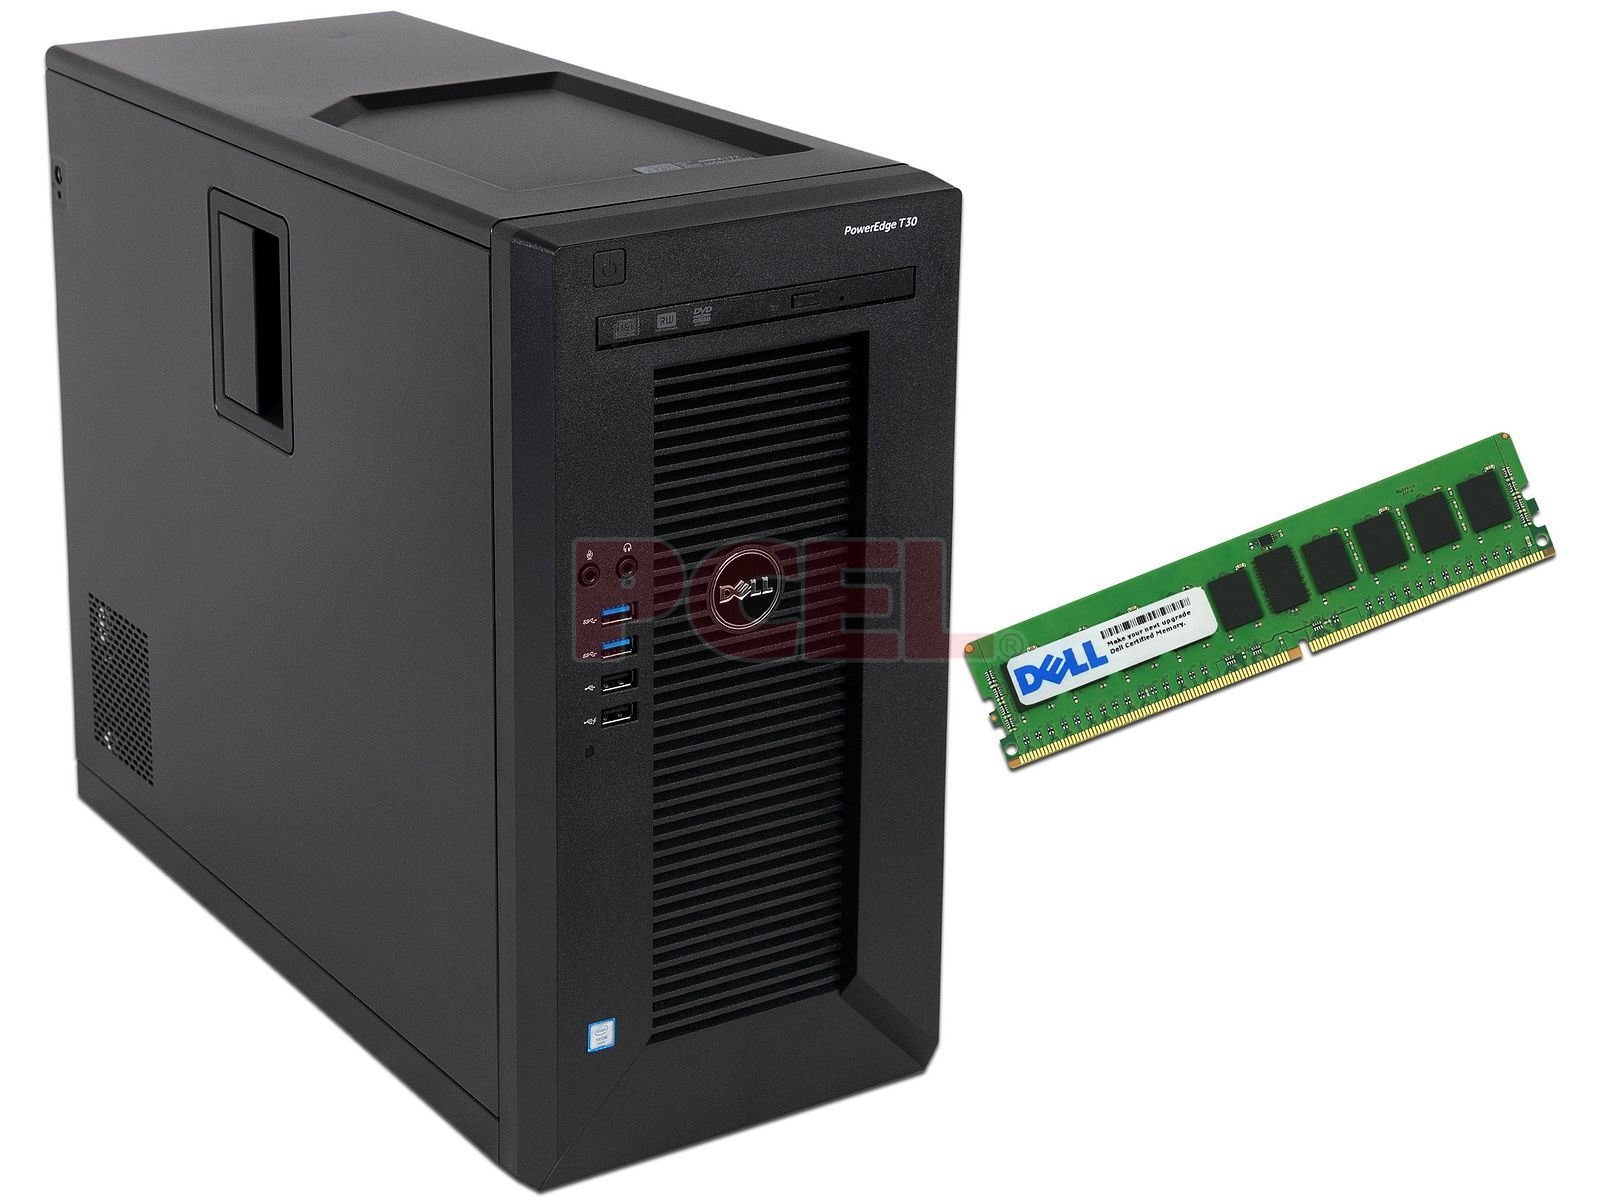 Servidor DELL PowerEdge T30: Procesador Intel Xeon E3-1225